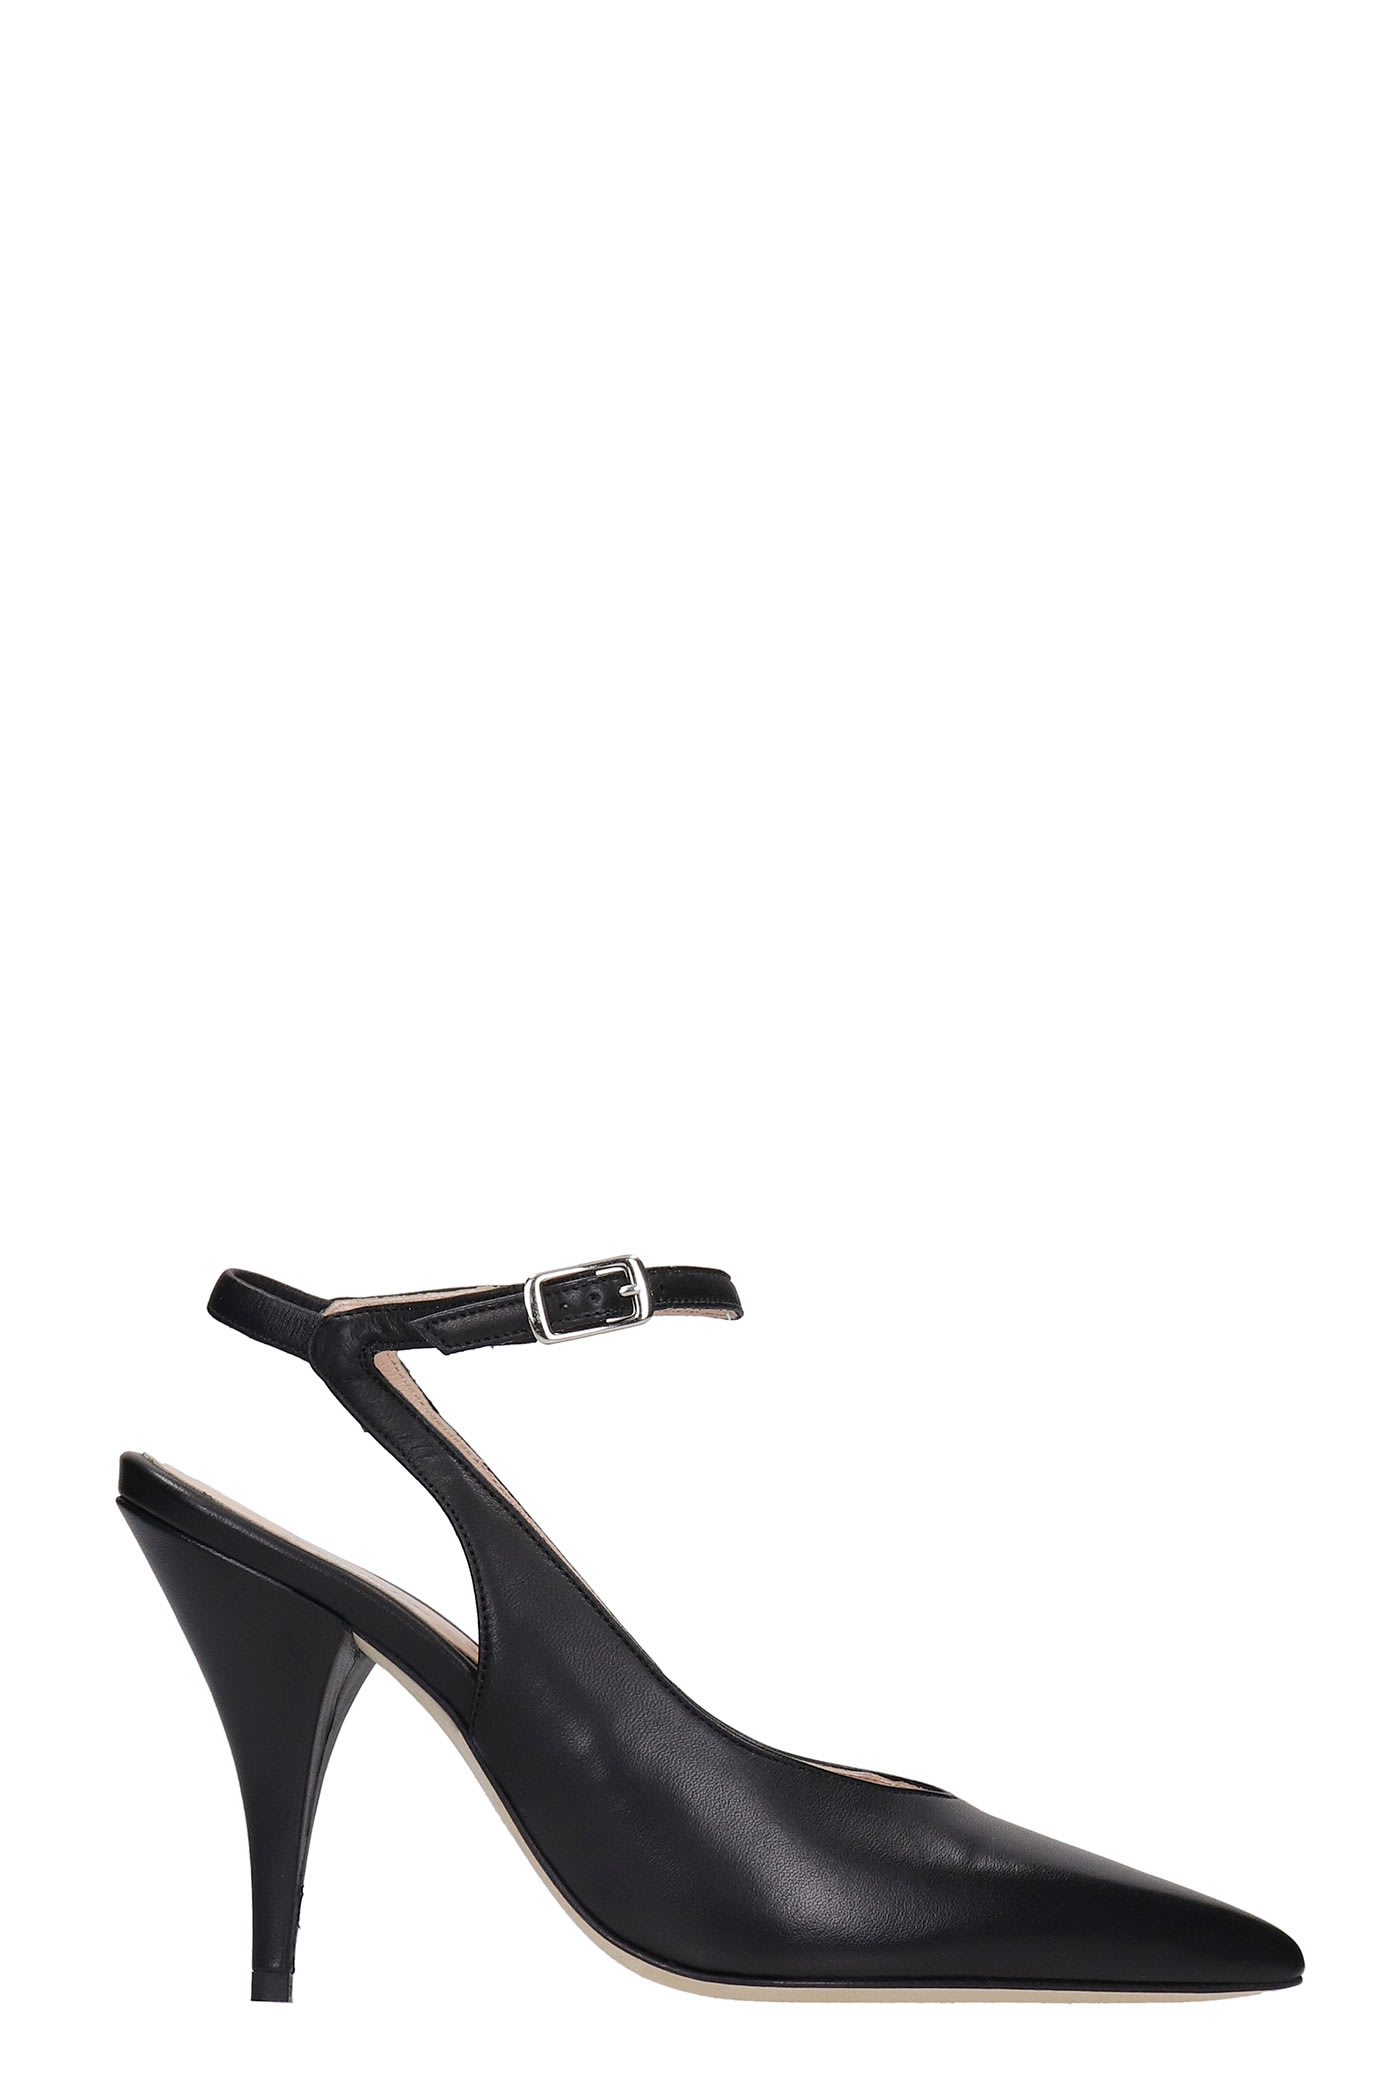 Pumps In Black Leather